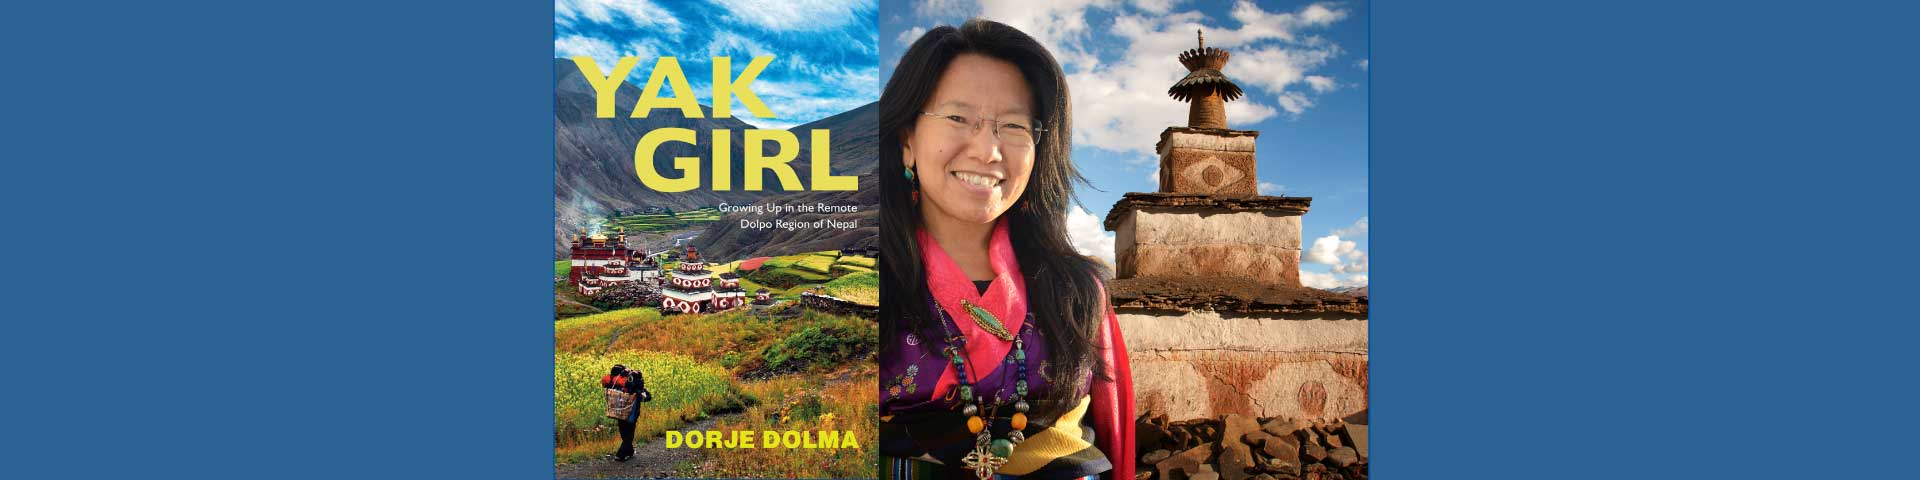 Yak Girl Mulit-media Presentation